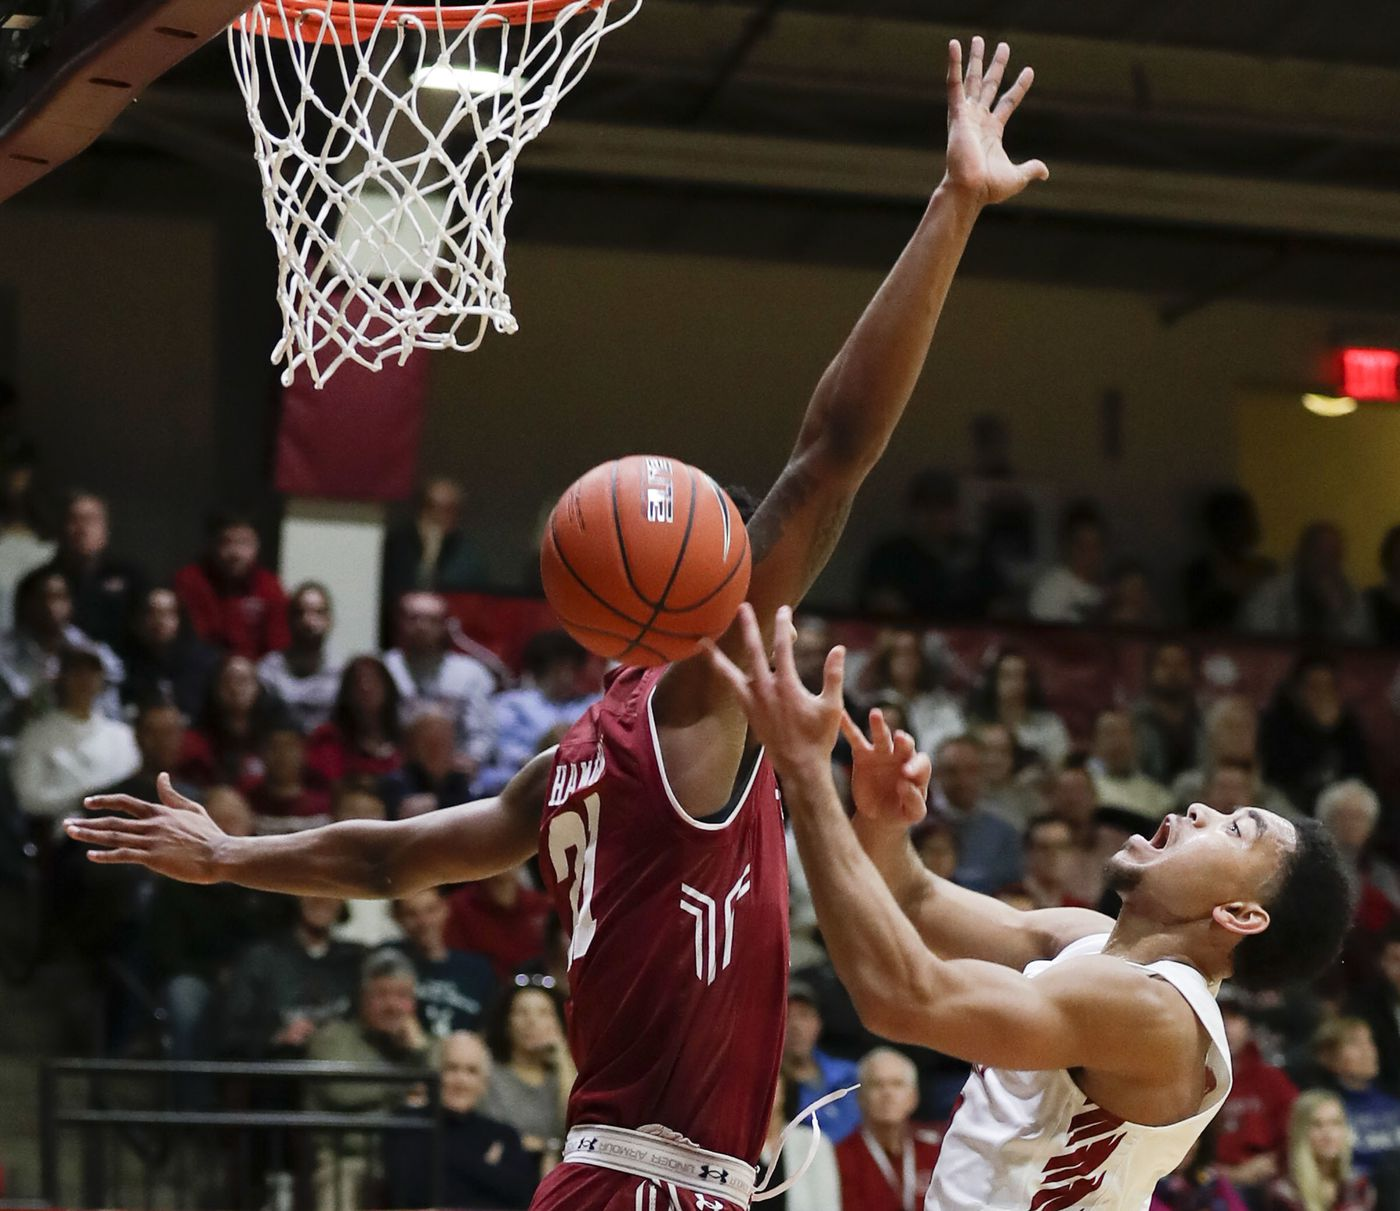 0399e6be858 Saint Joseph's guard Jared Bynum getting fouled after driving to the basket  against Temple forward Justyn